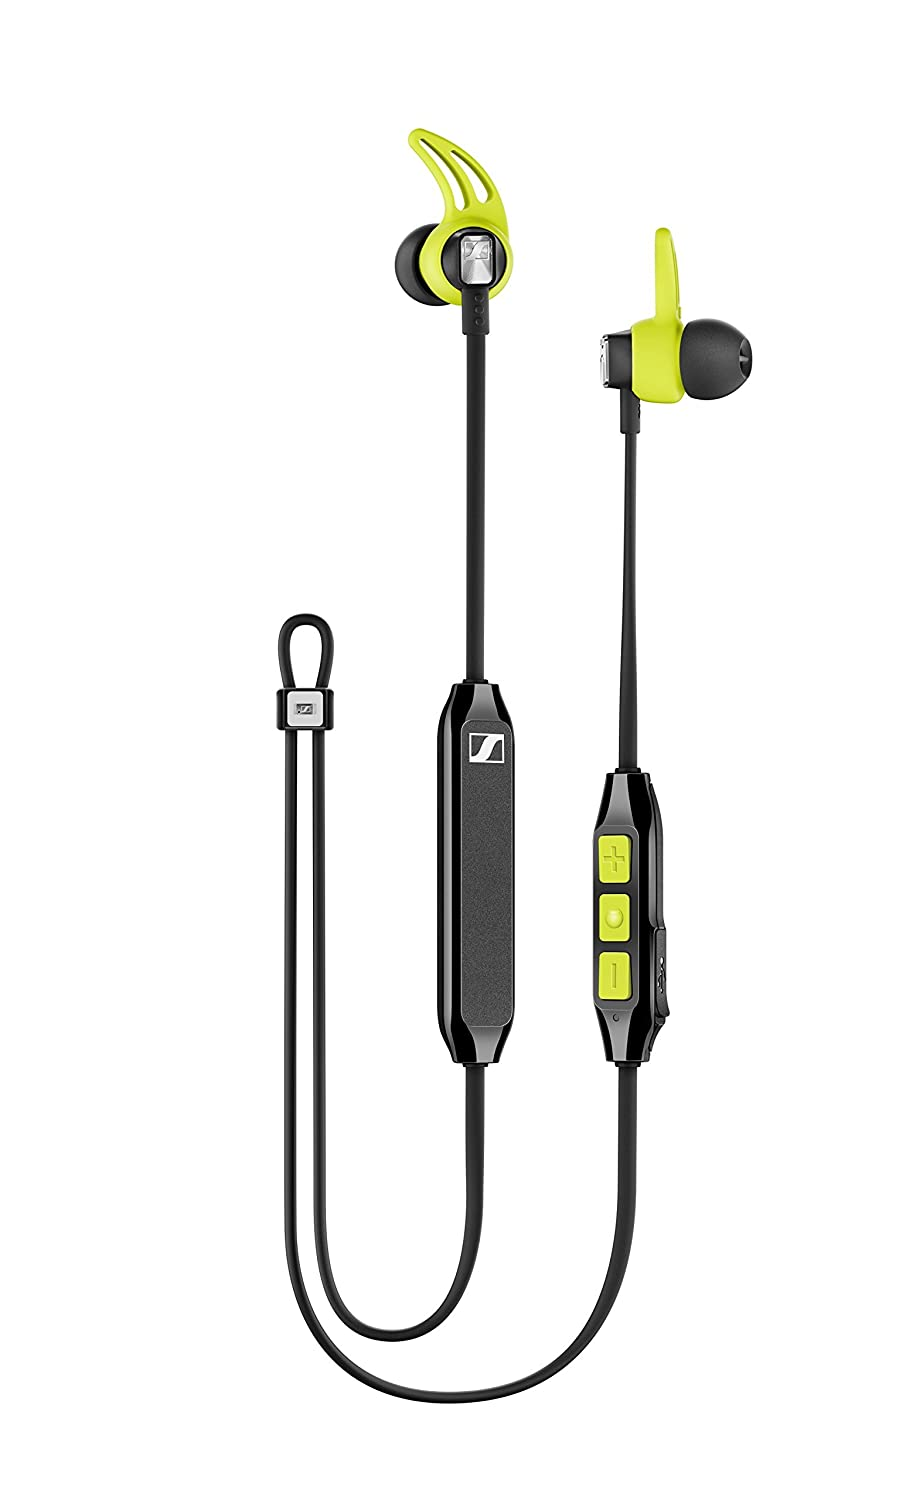 Sennheiser CX Sport wireless earphones